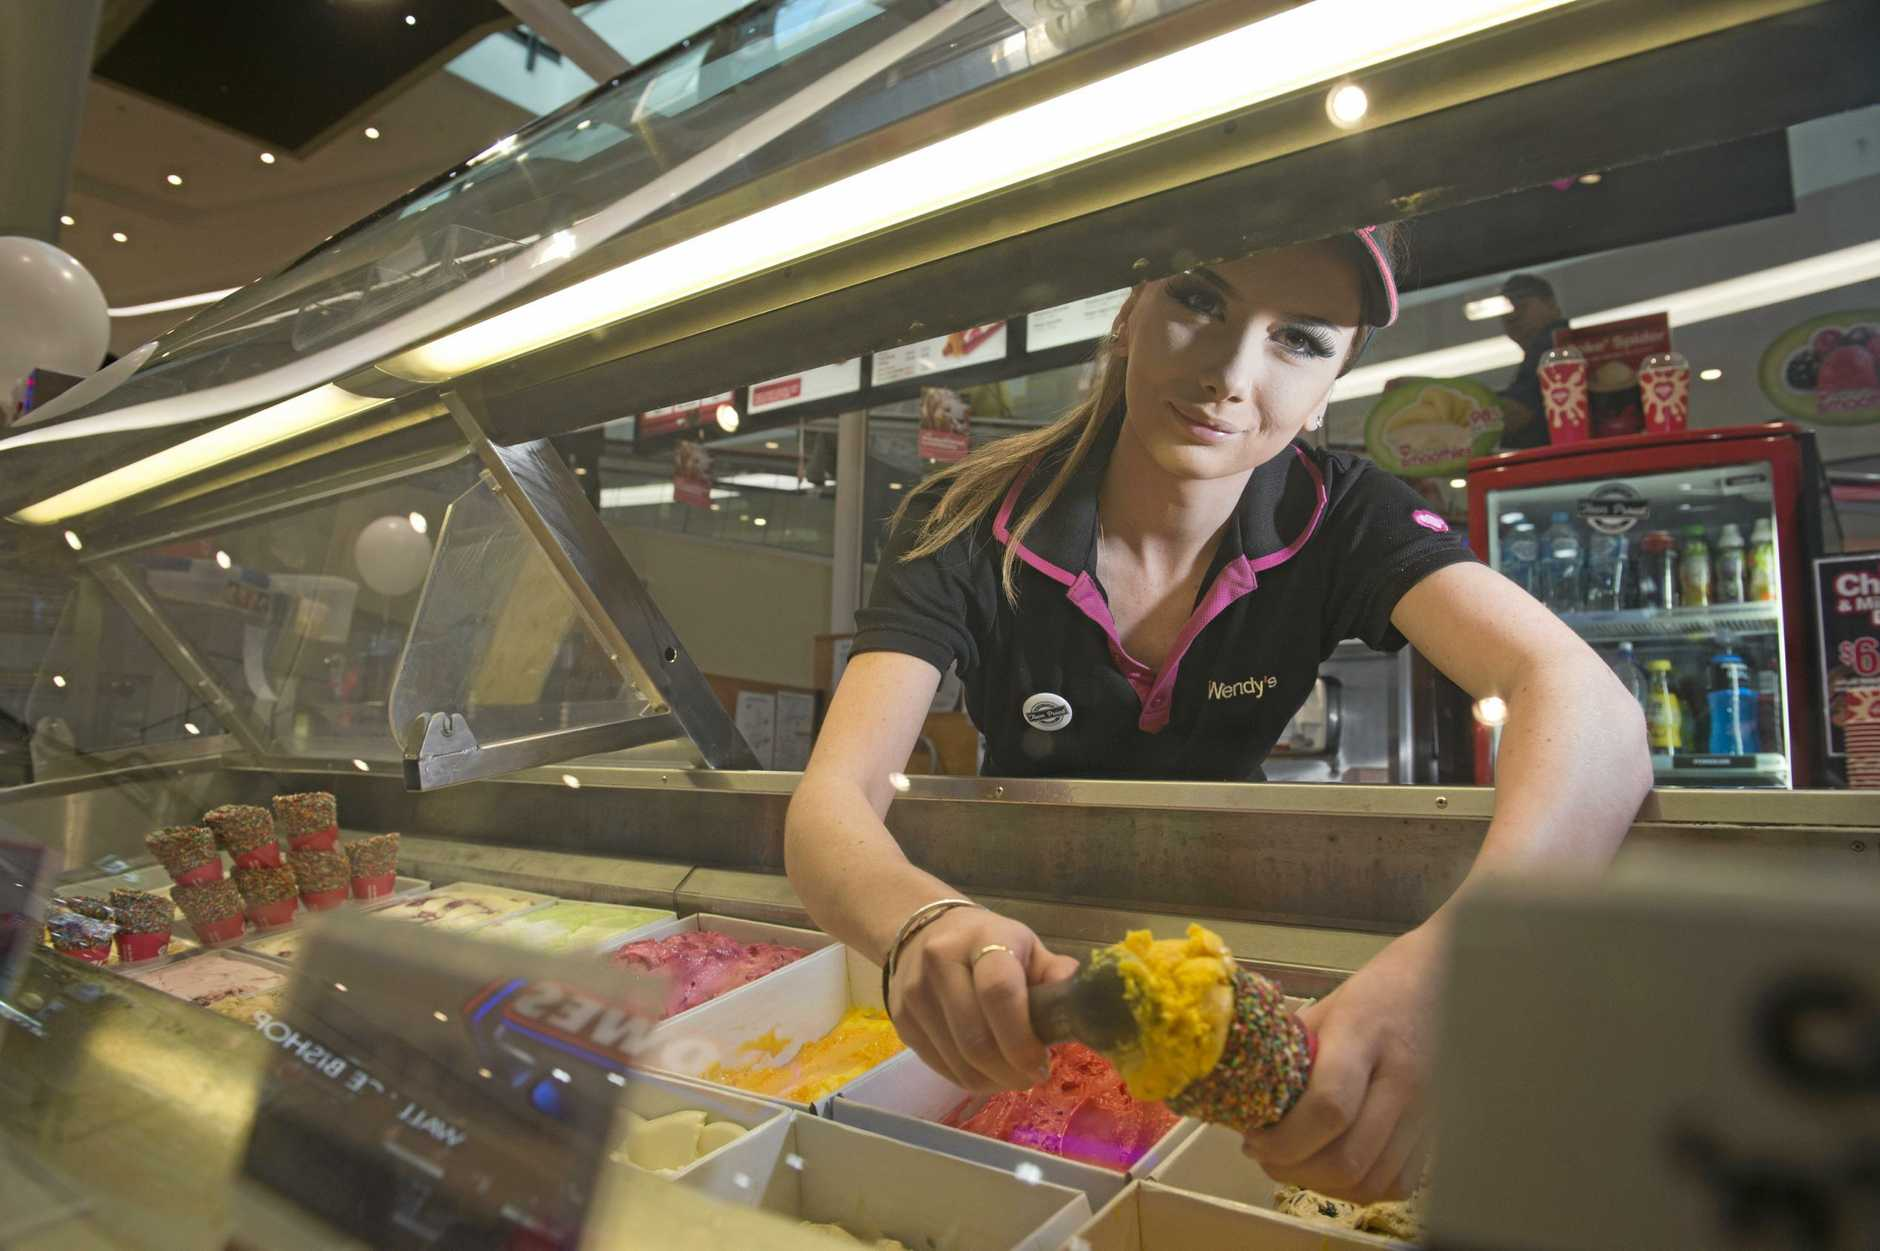 File image of a Wendy's franchisee shop assistant scooping up ice cream a few years ago.